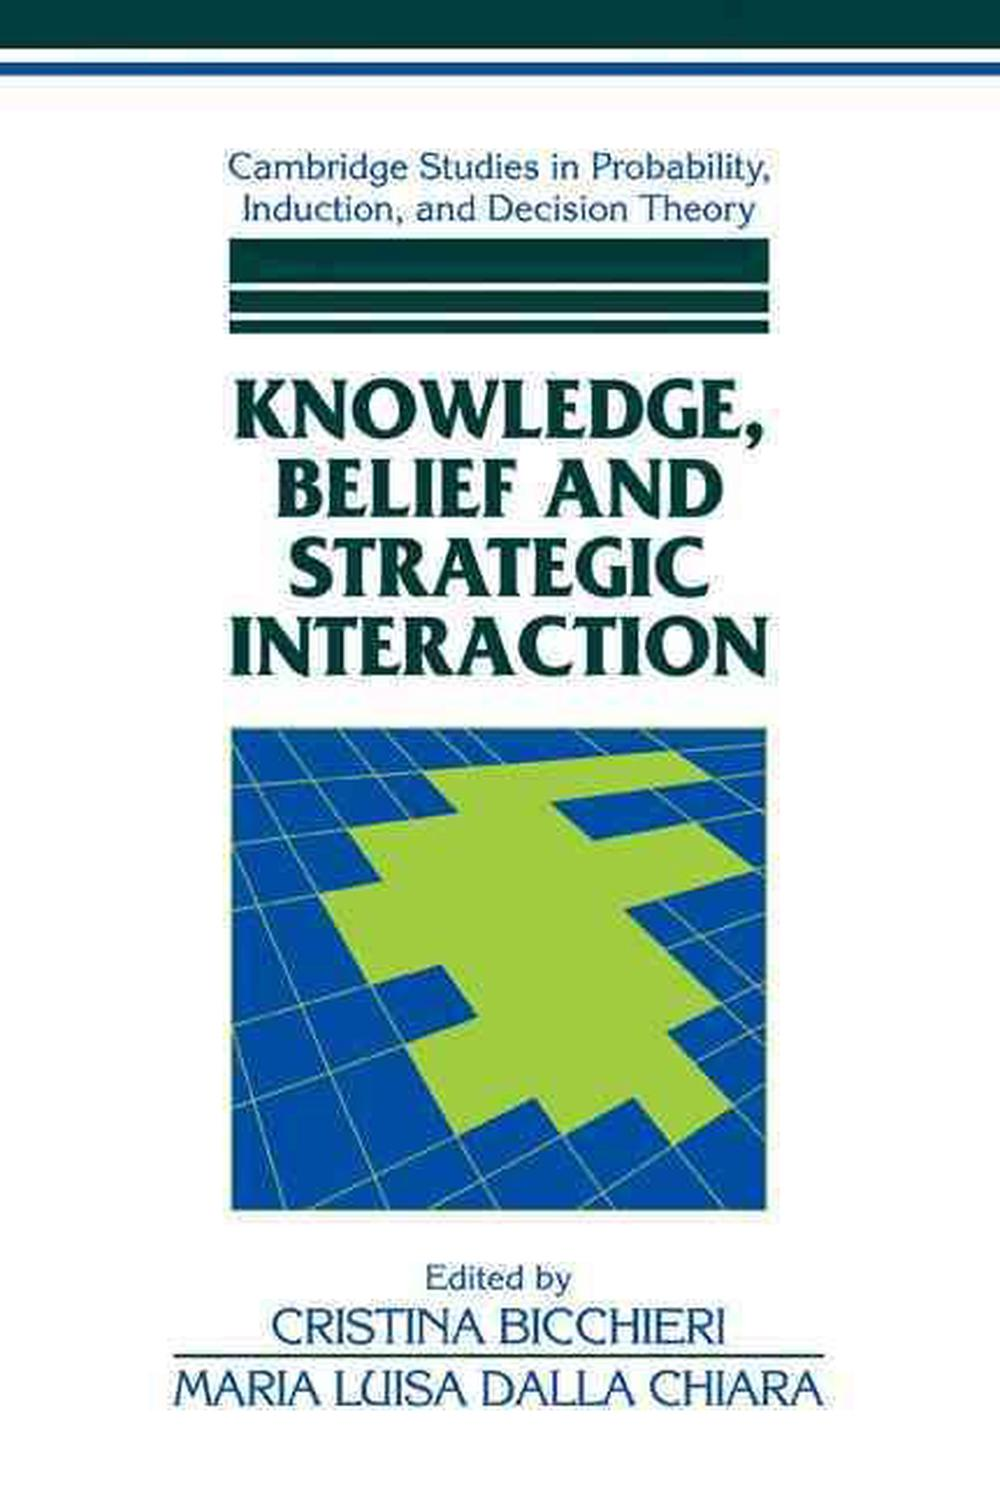 Bicchieri Cristina Details About Knowledge Belief And Strategic Interaction By Cristina Bicchieri English Pap